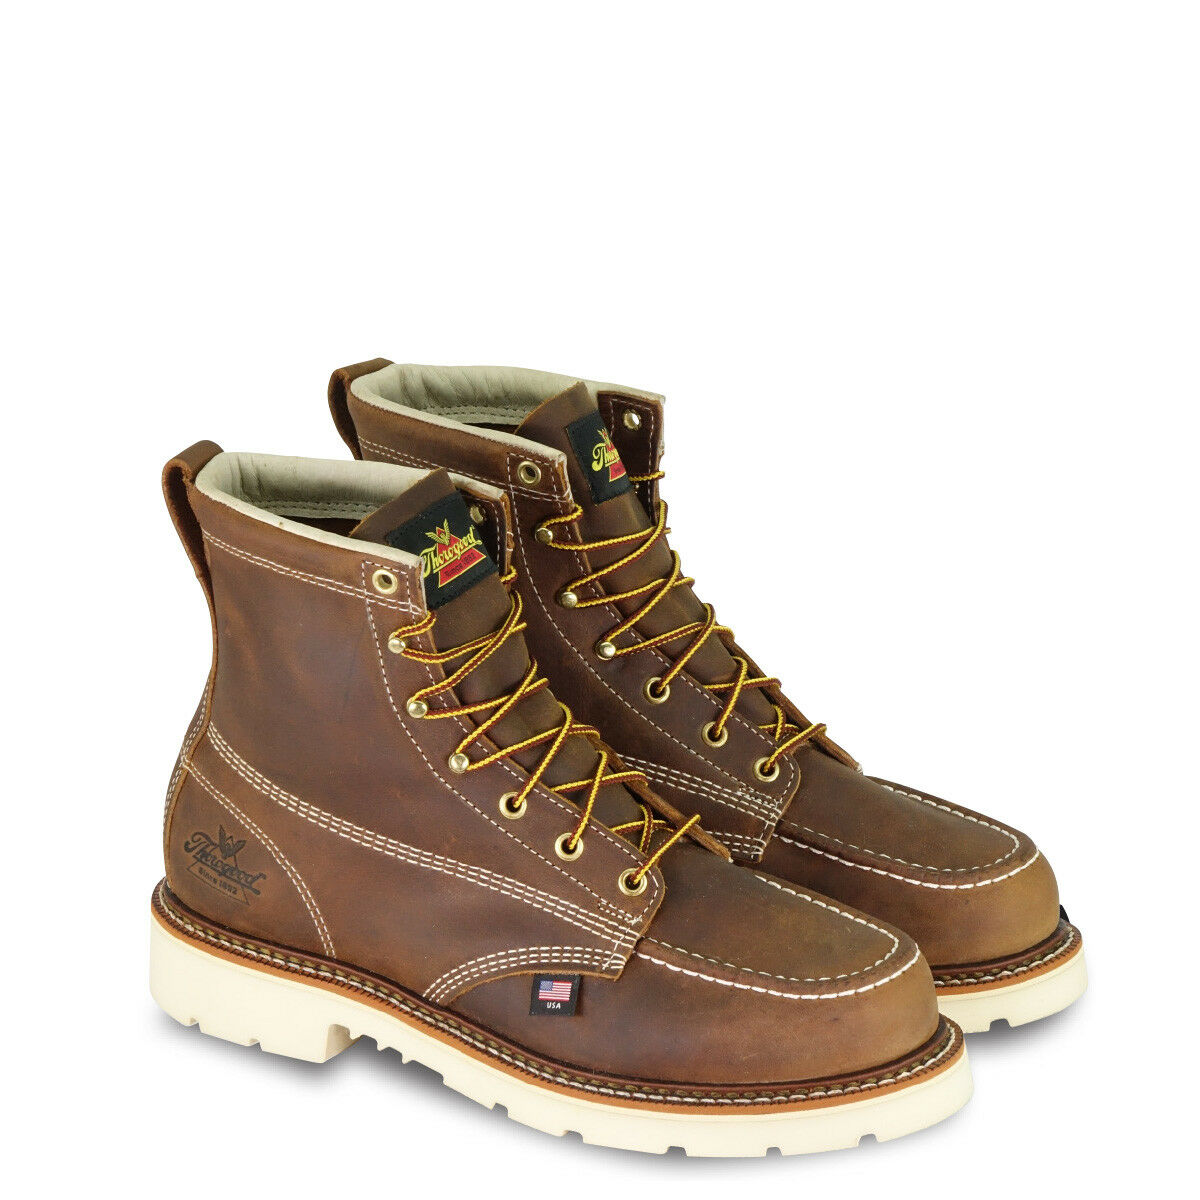 Thgoldgood Boots Made In USA American Heritage 6  Moc Toe EH 814-4375 Work